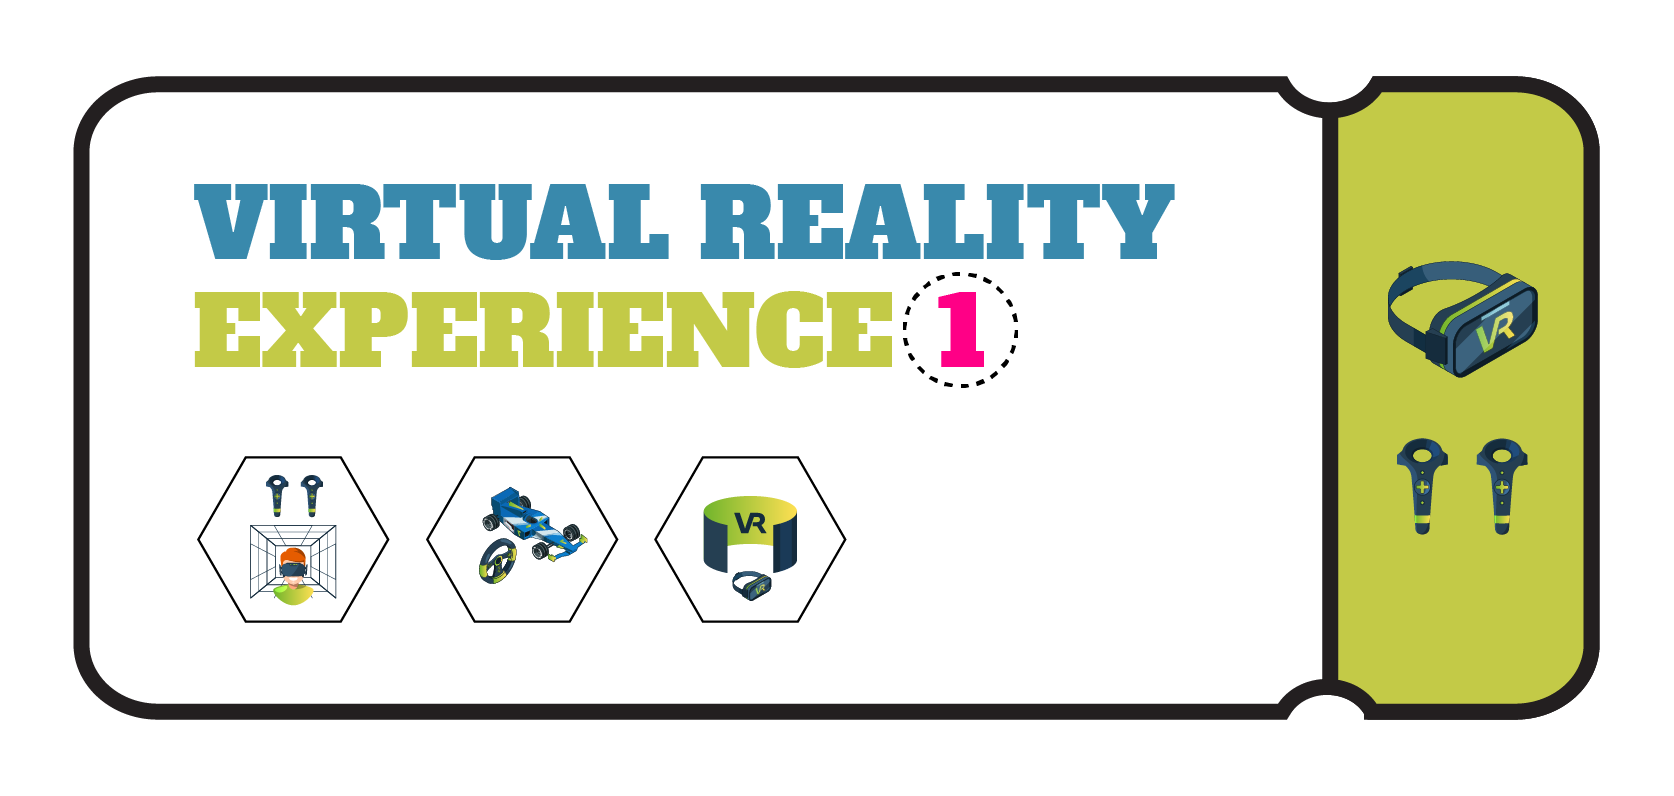 Jumpskillz Virtual Reality Experience 1 Purmerend@4x